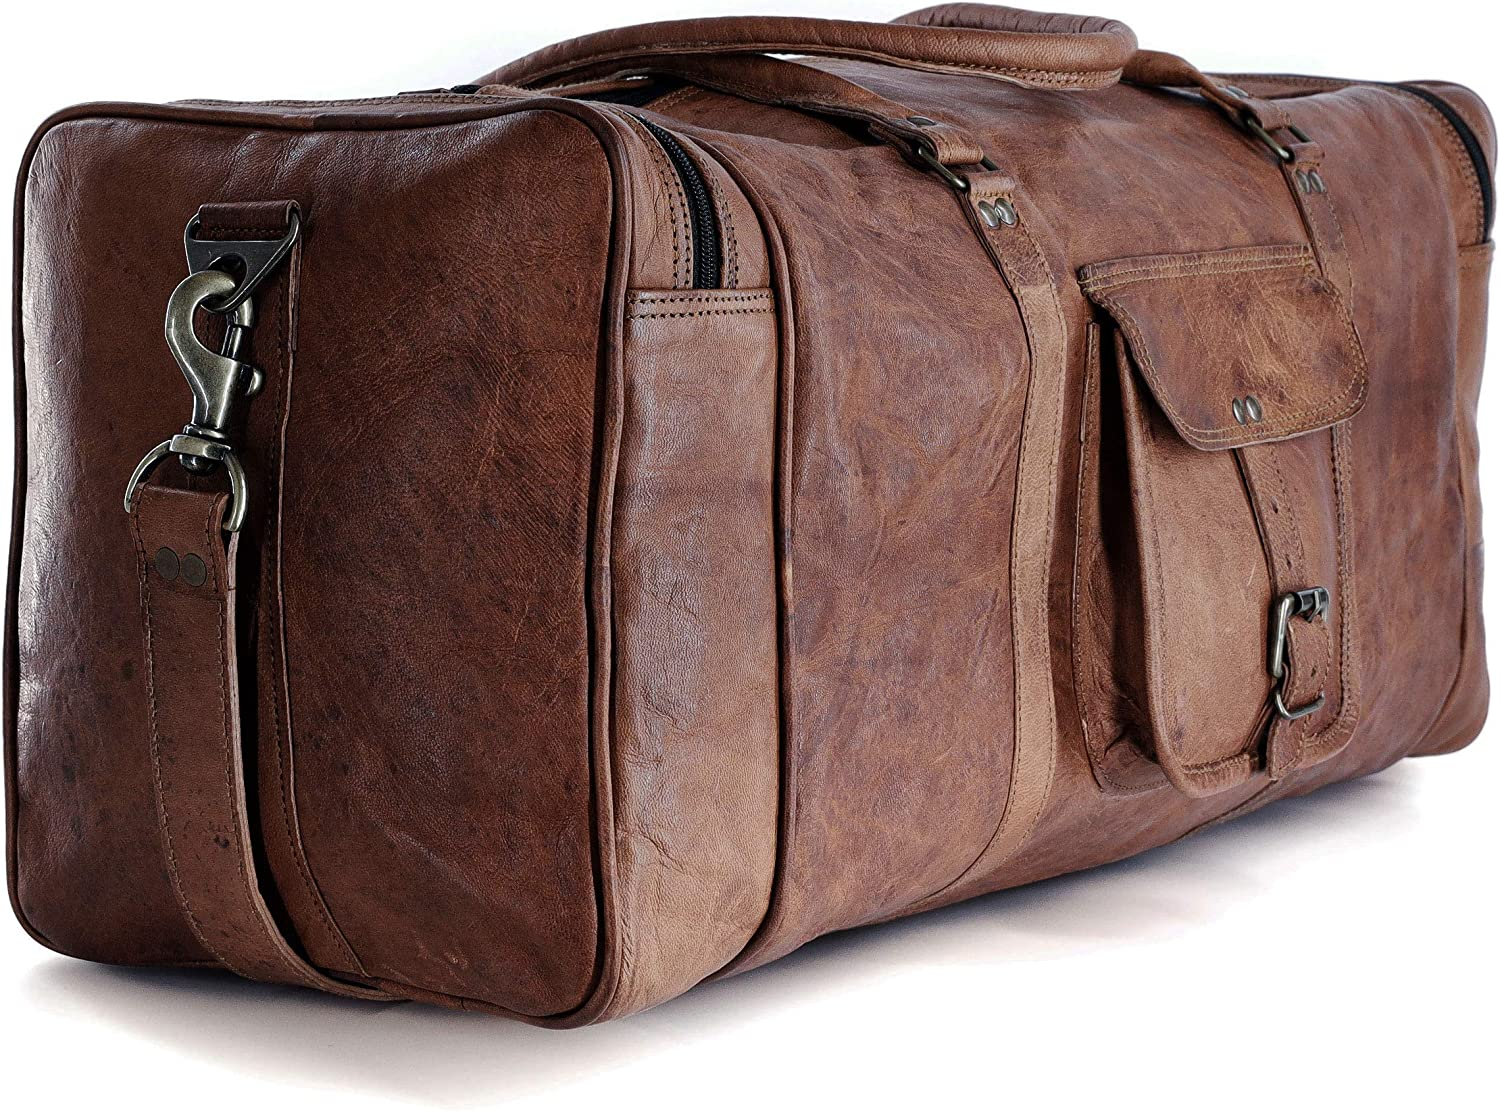 Large Leather Luggage Duffel Overnight Sports 21 Inch Airplane Cabin Bag Men